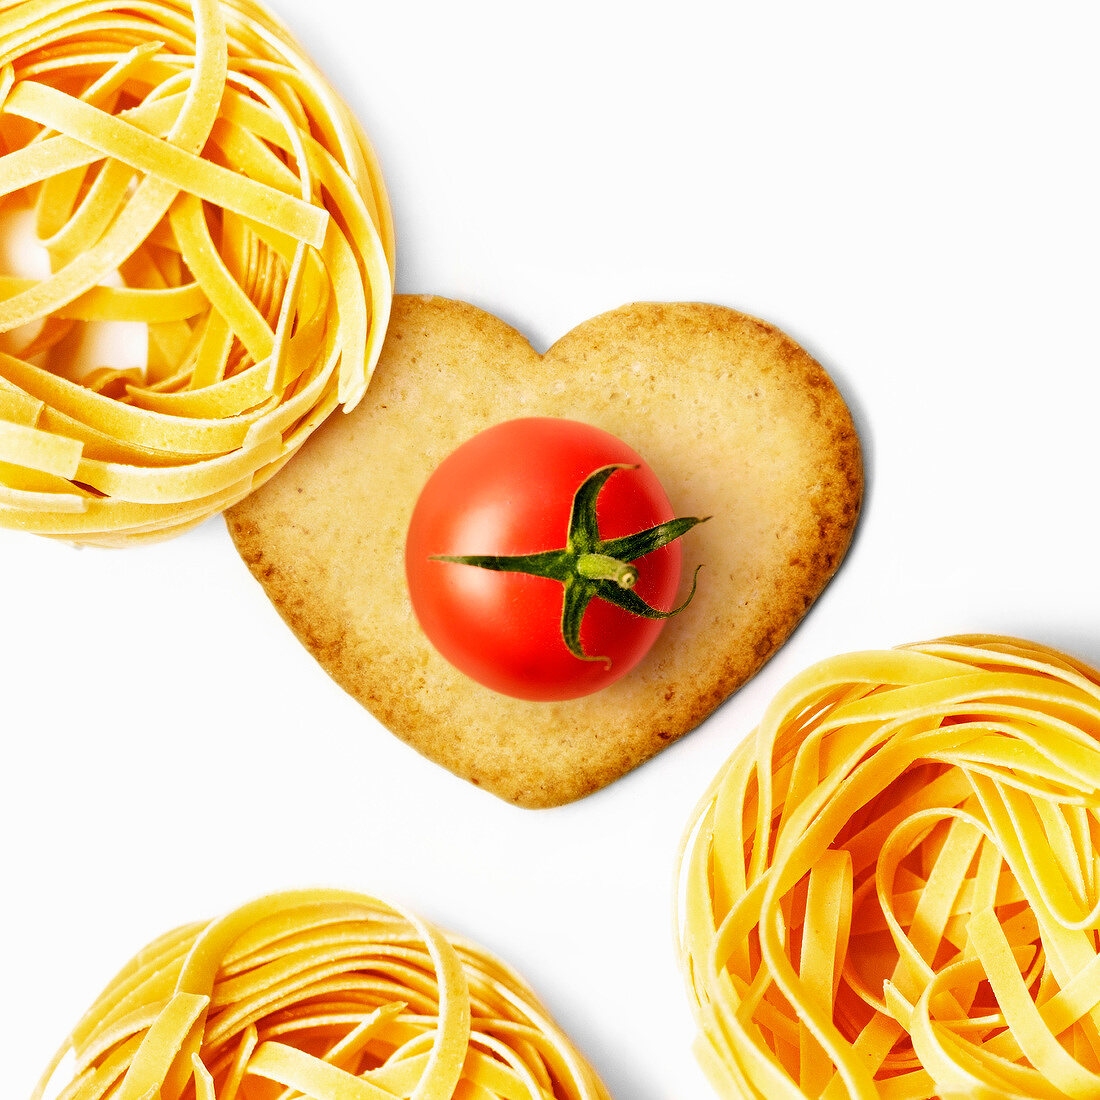 Heart-shaped biscuit witha cherry tomato and tagliatelle nests